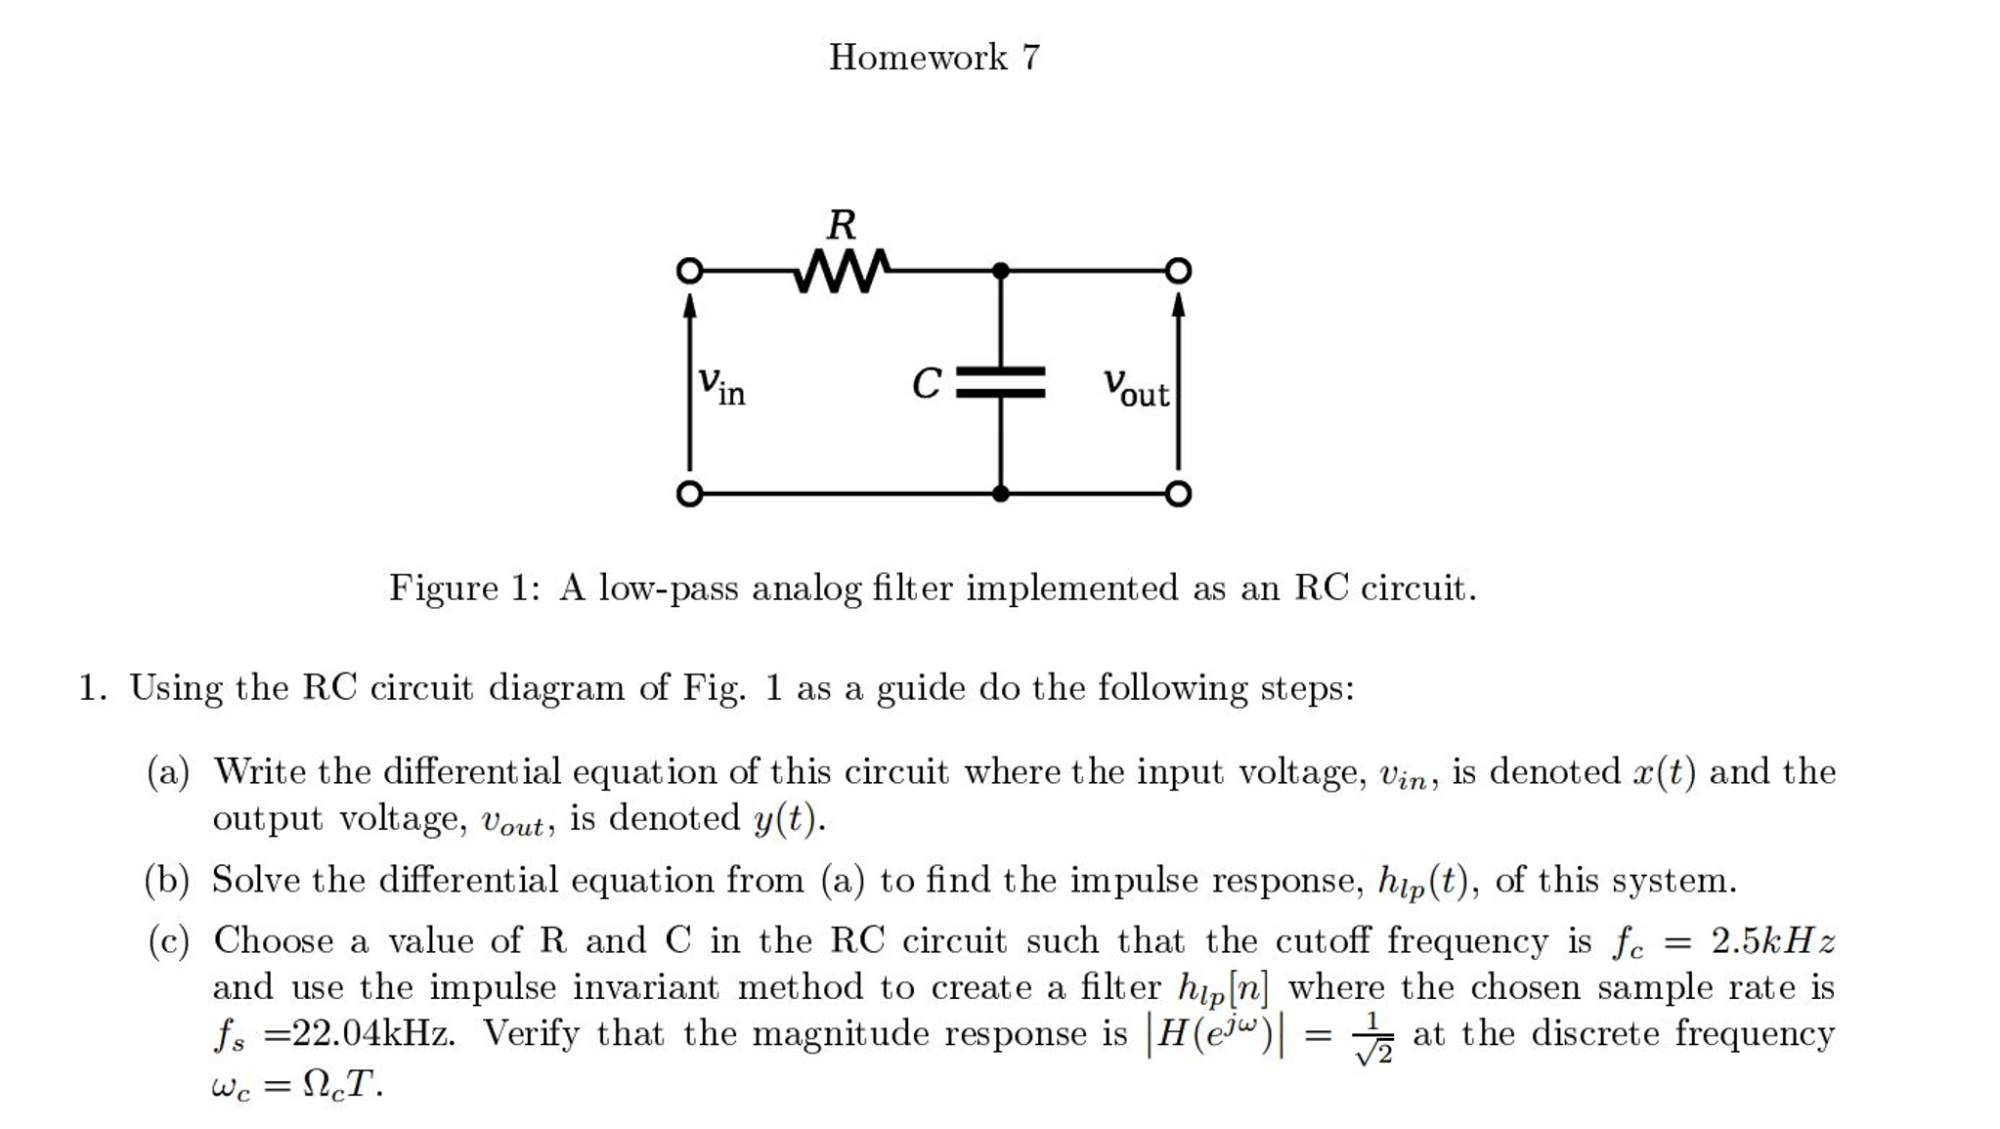 hight resolution of question using the rc circuit diagram of fig 1 as a guide do the following steps write the differential equation of this circuit where the input voltage